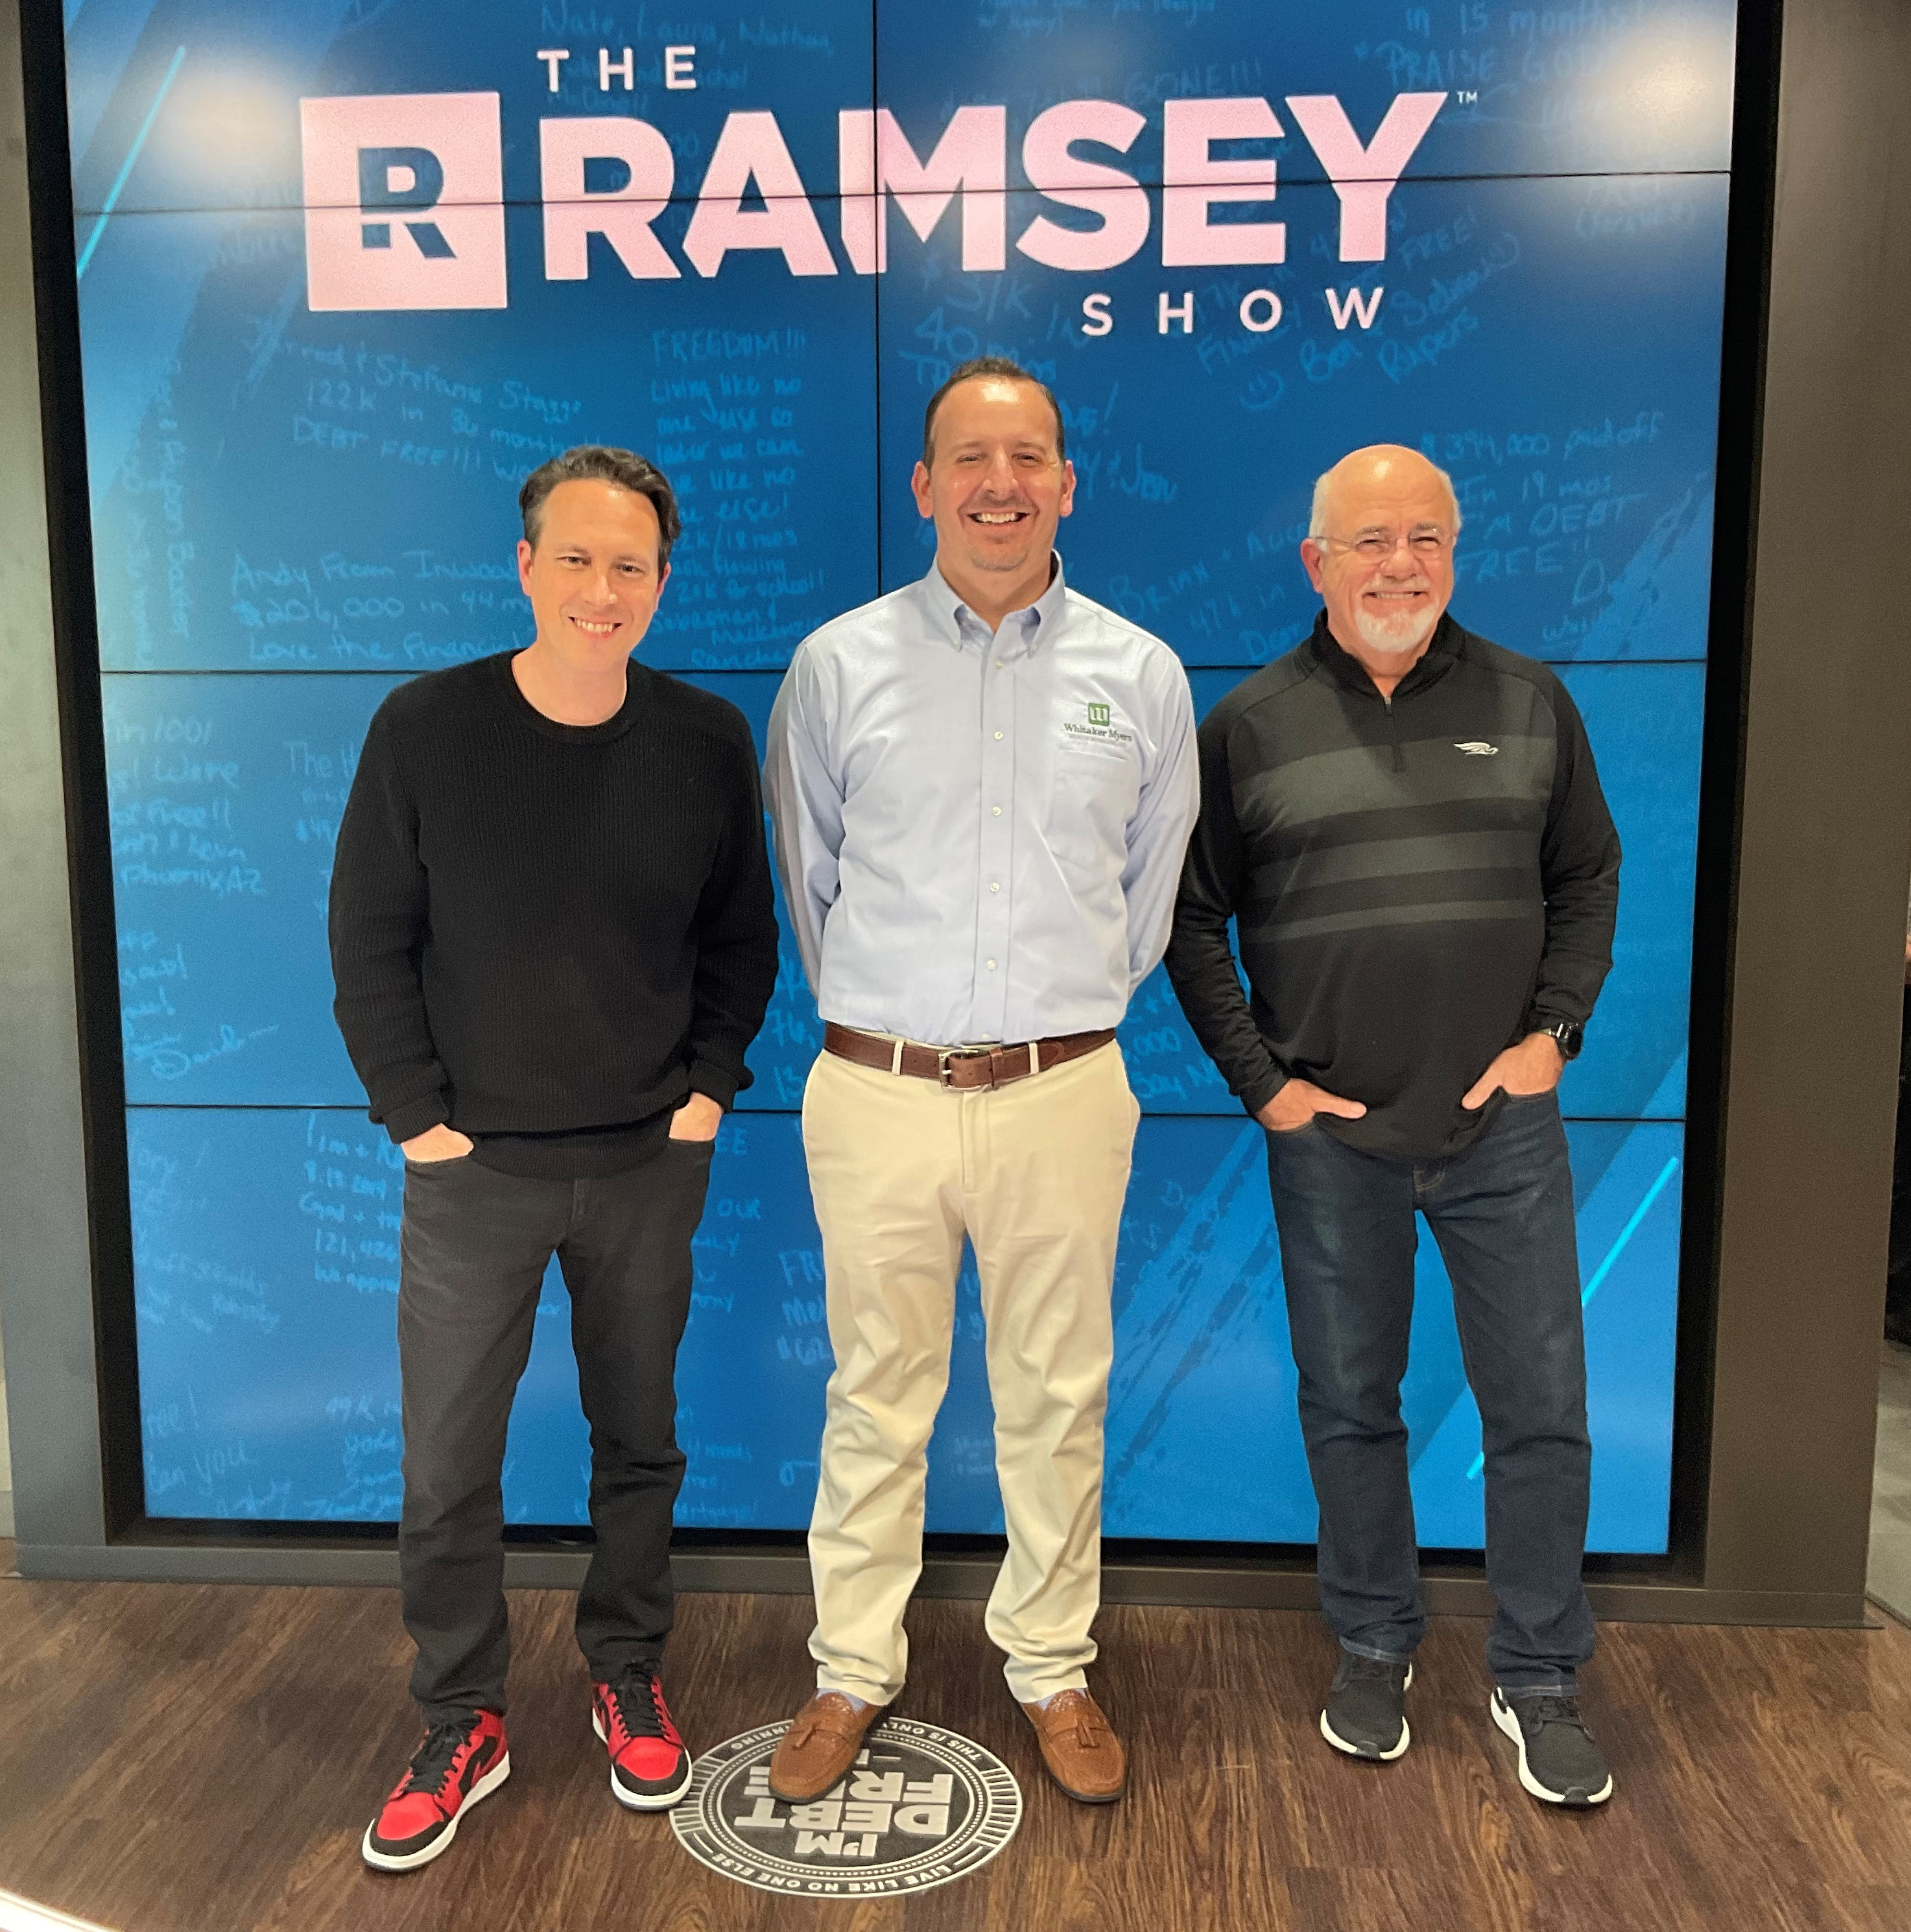 John-mark Young, financial advisor Ashland OH